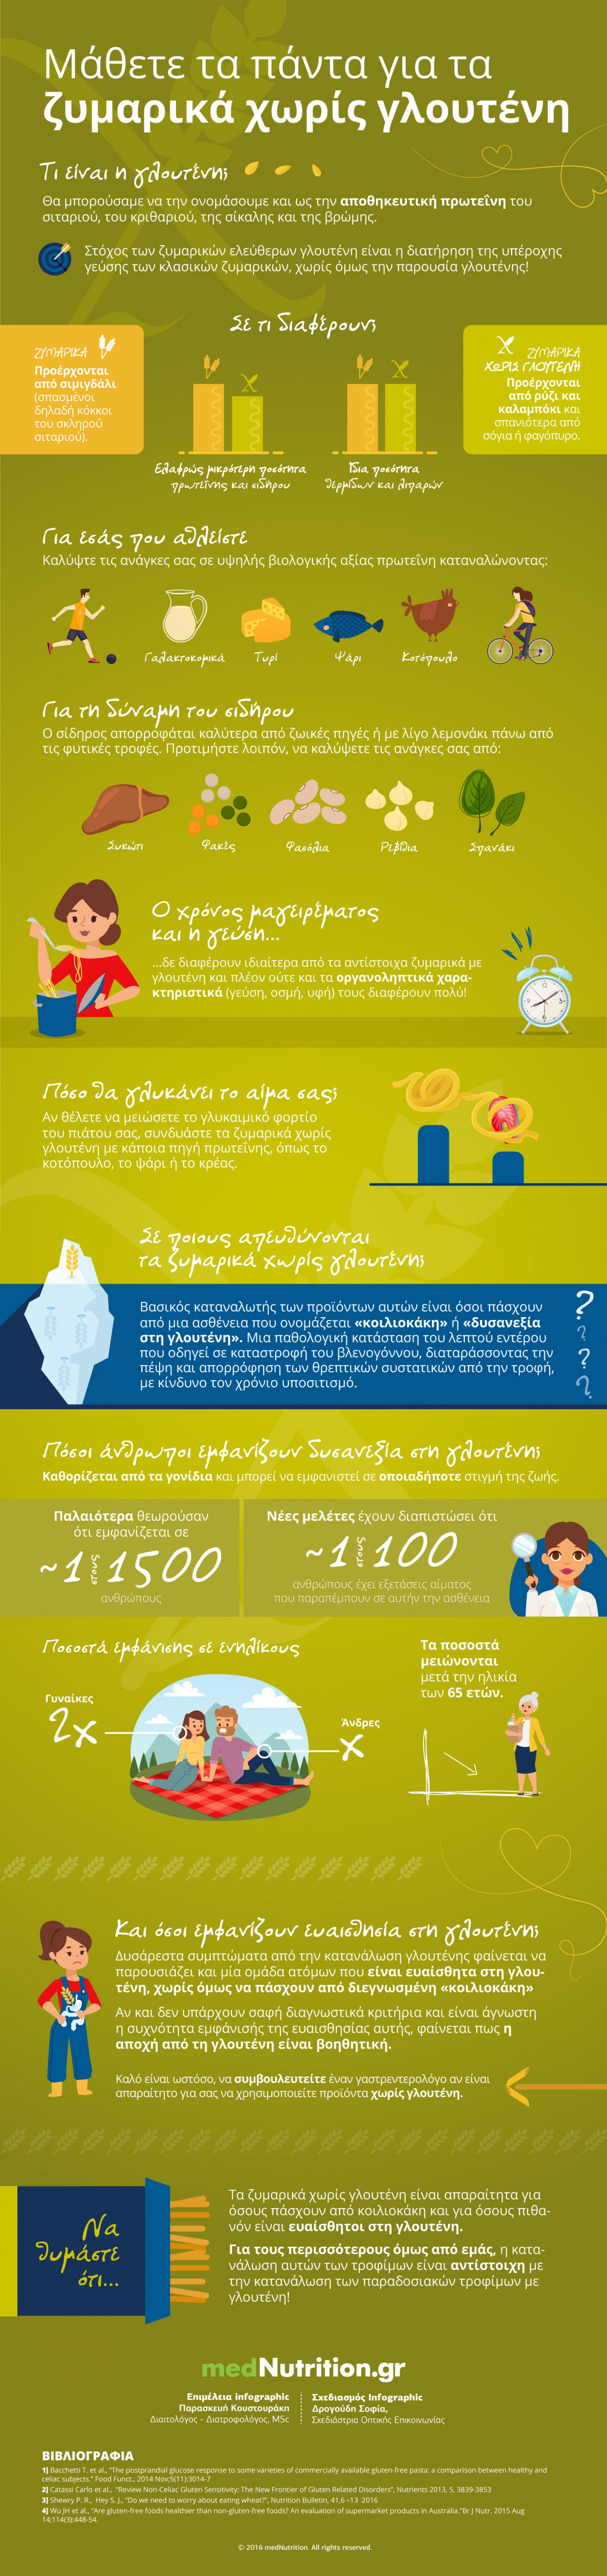 Gluten free pasta: what's the difference? Infographic